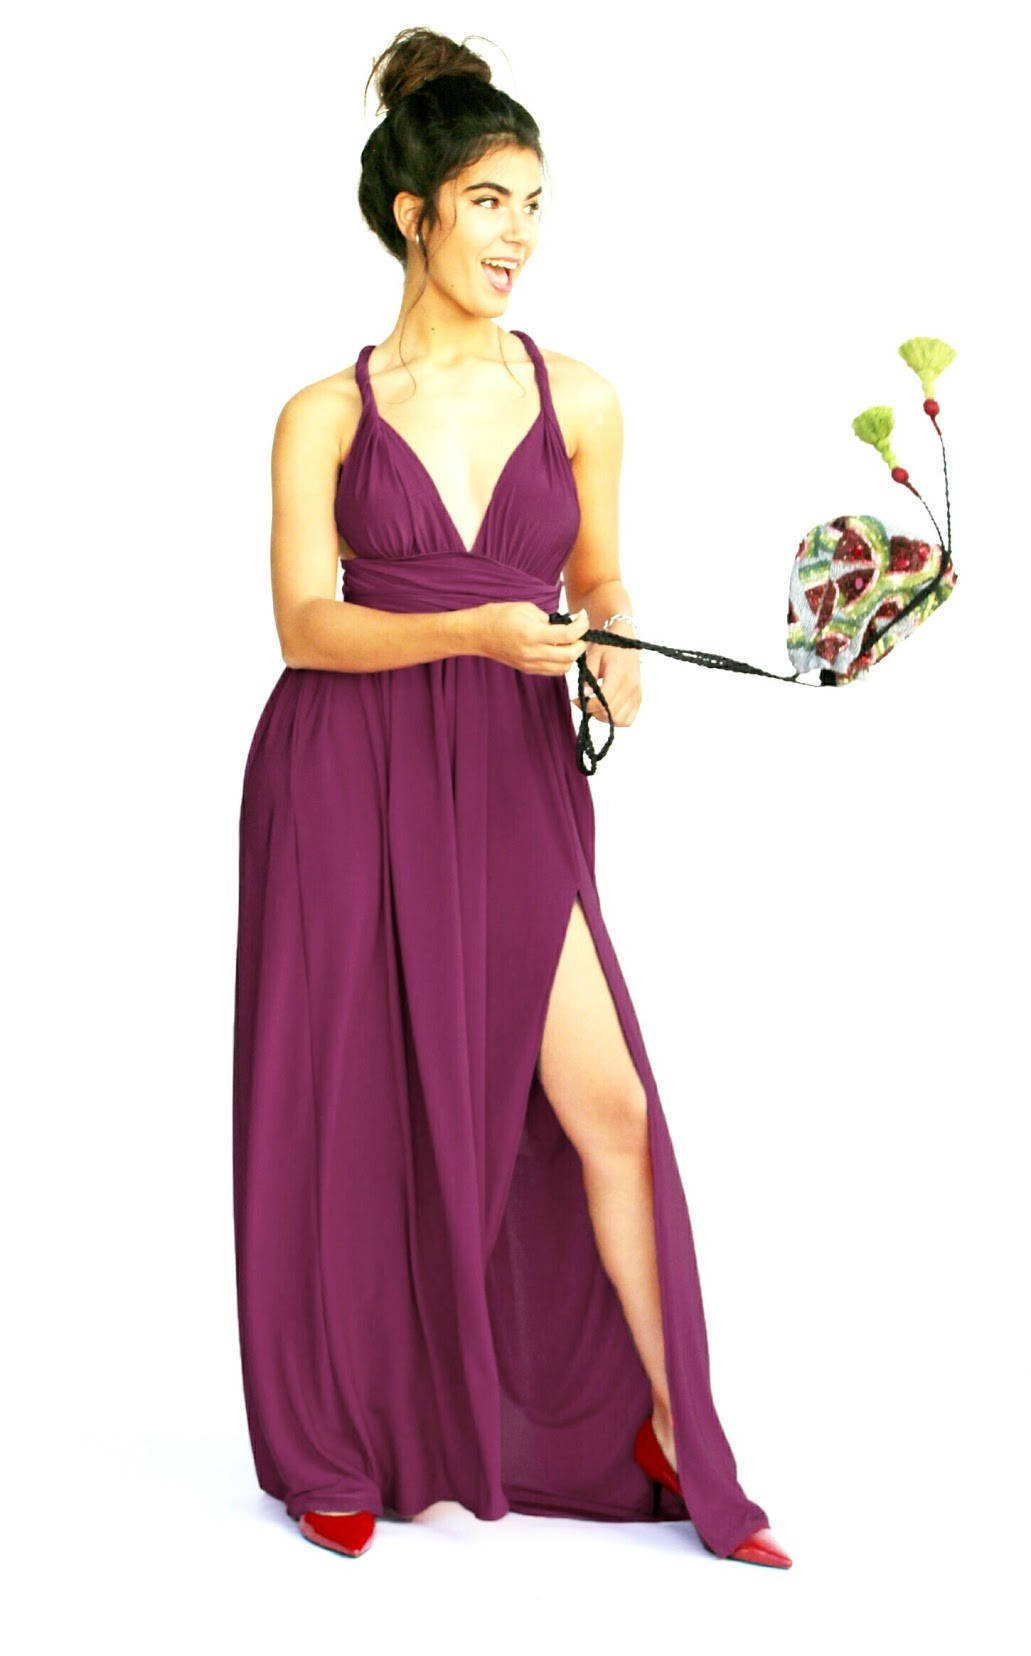 Women's Infinity Burgundy Prom Dress, Bridesmaid Evening Dress, Maxi Long Dress for Wedding, Elegant Lycra Gown